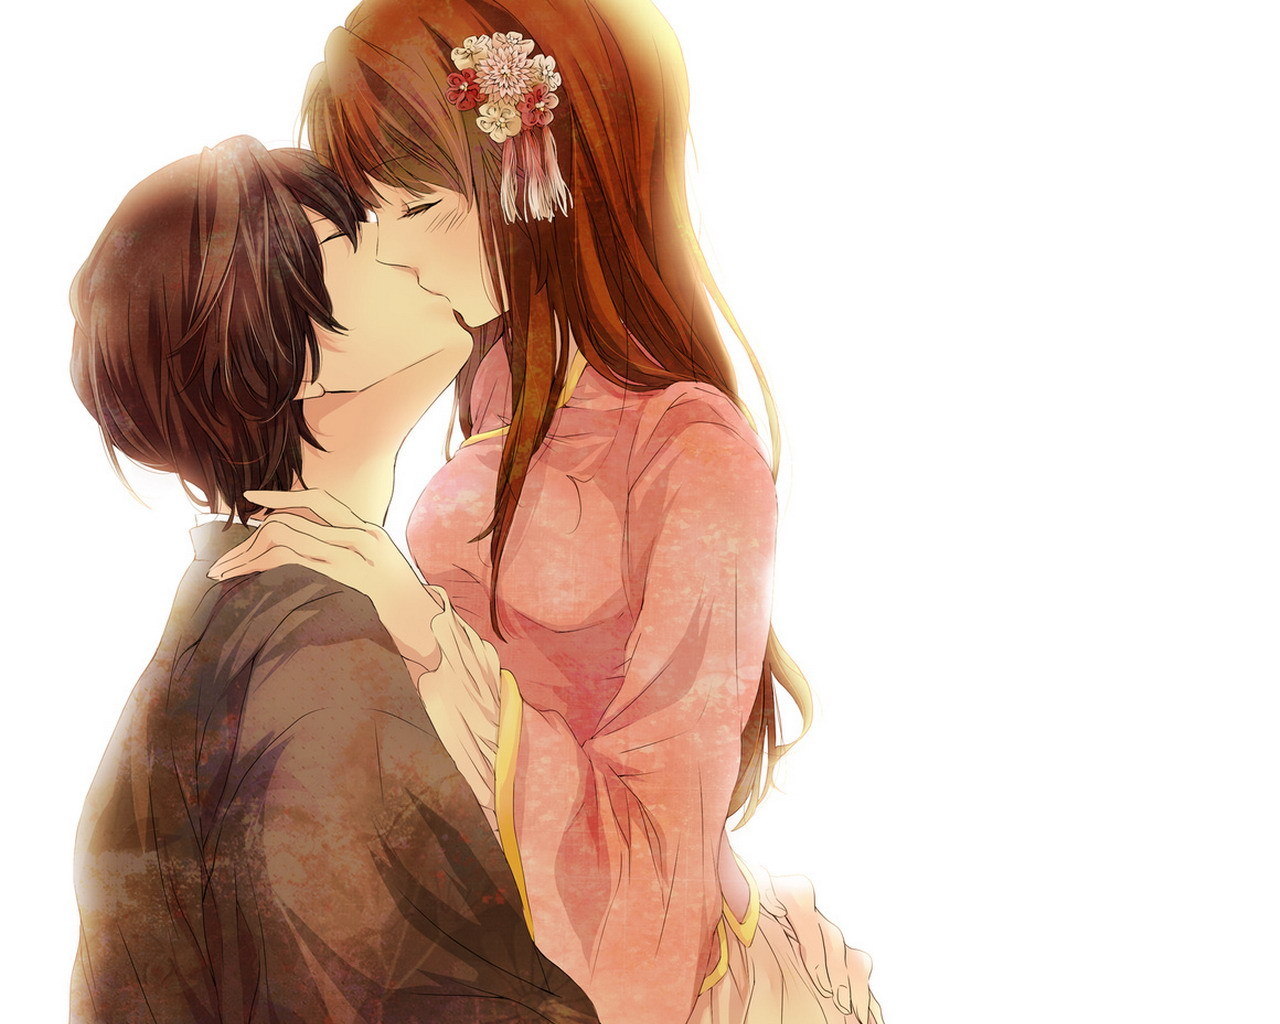 Love Wallpapers Of Kiss : Animals Zoo Park: Anime couple, Anime Love couple Kiss Wallpapers & Pictures